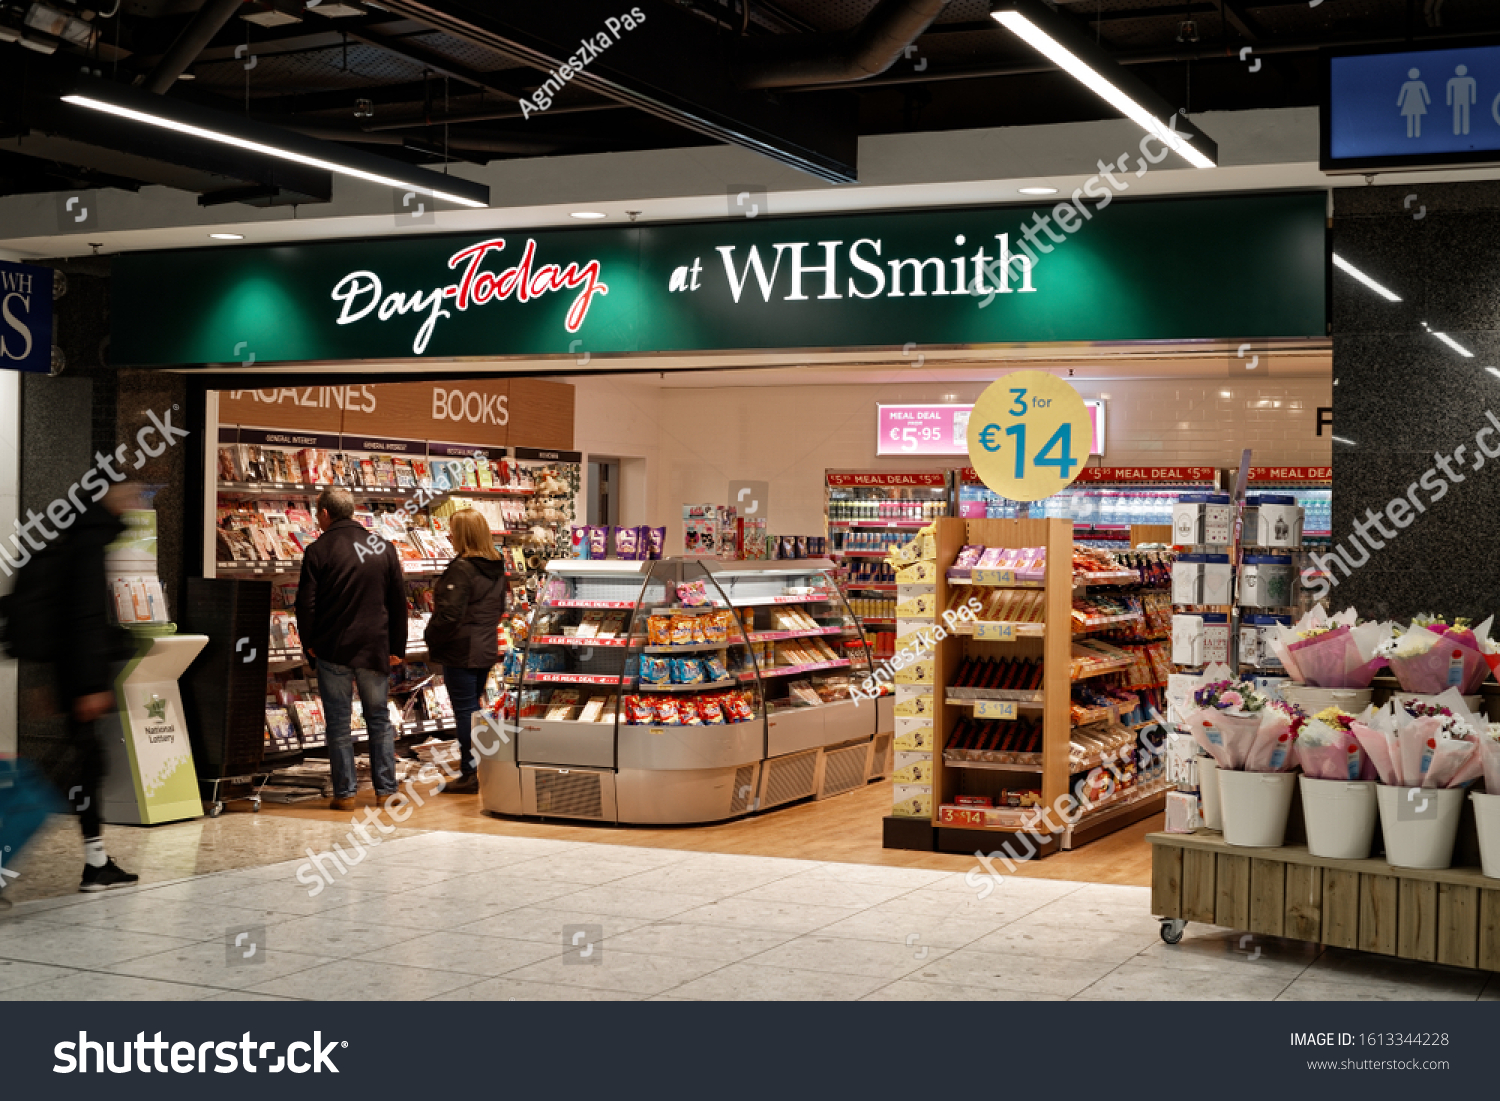 DUBLIN, IRELAND - JANUARY 11, 2020: WHSmith store in Dublin Airport, Terminal 1. Store's interior. View from outside.